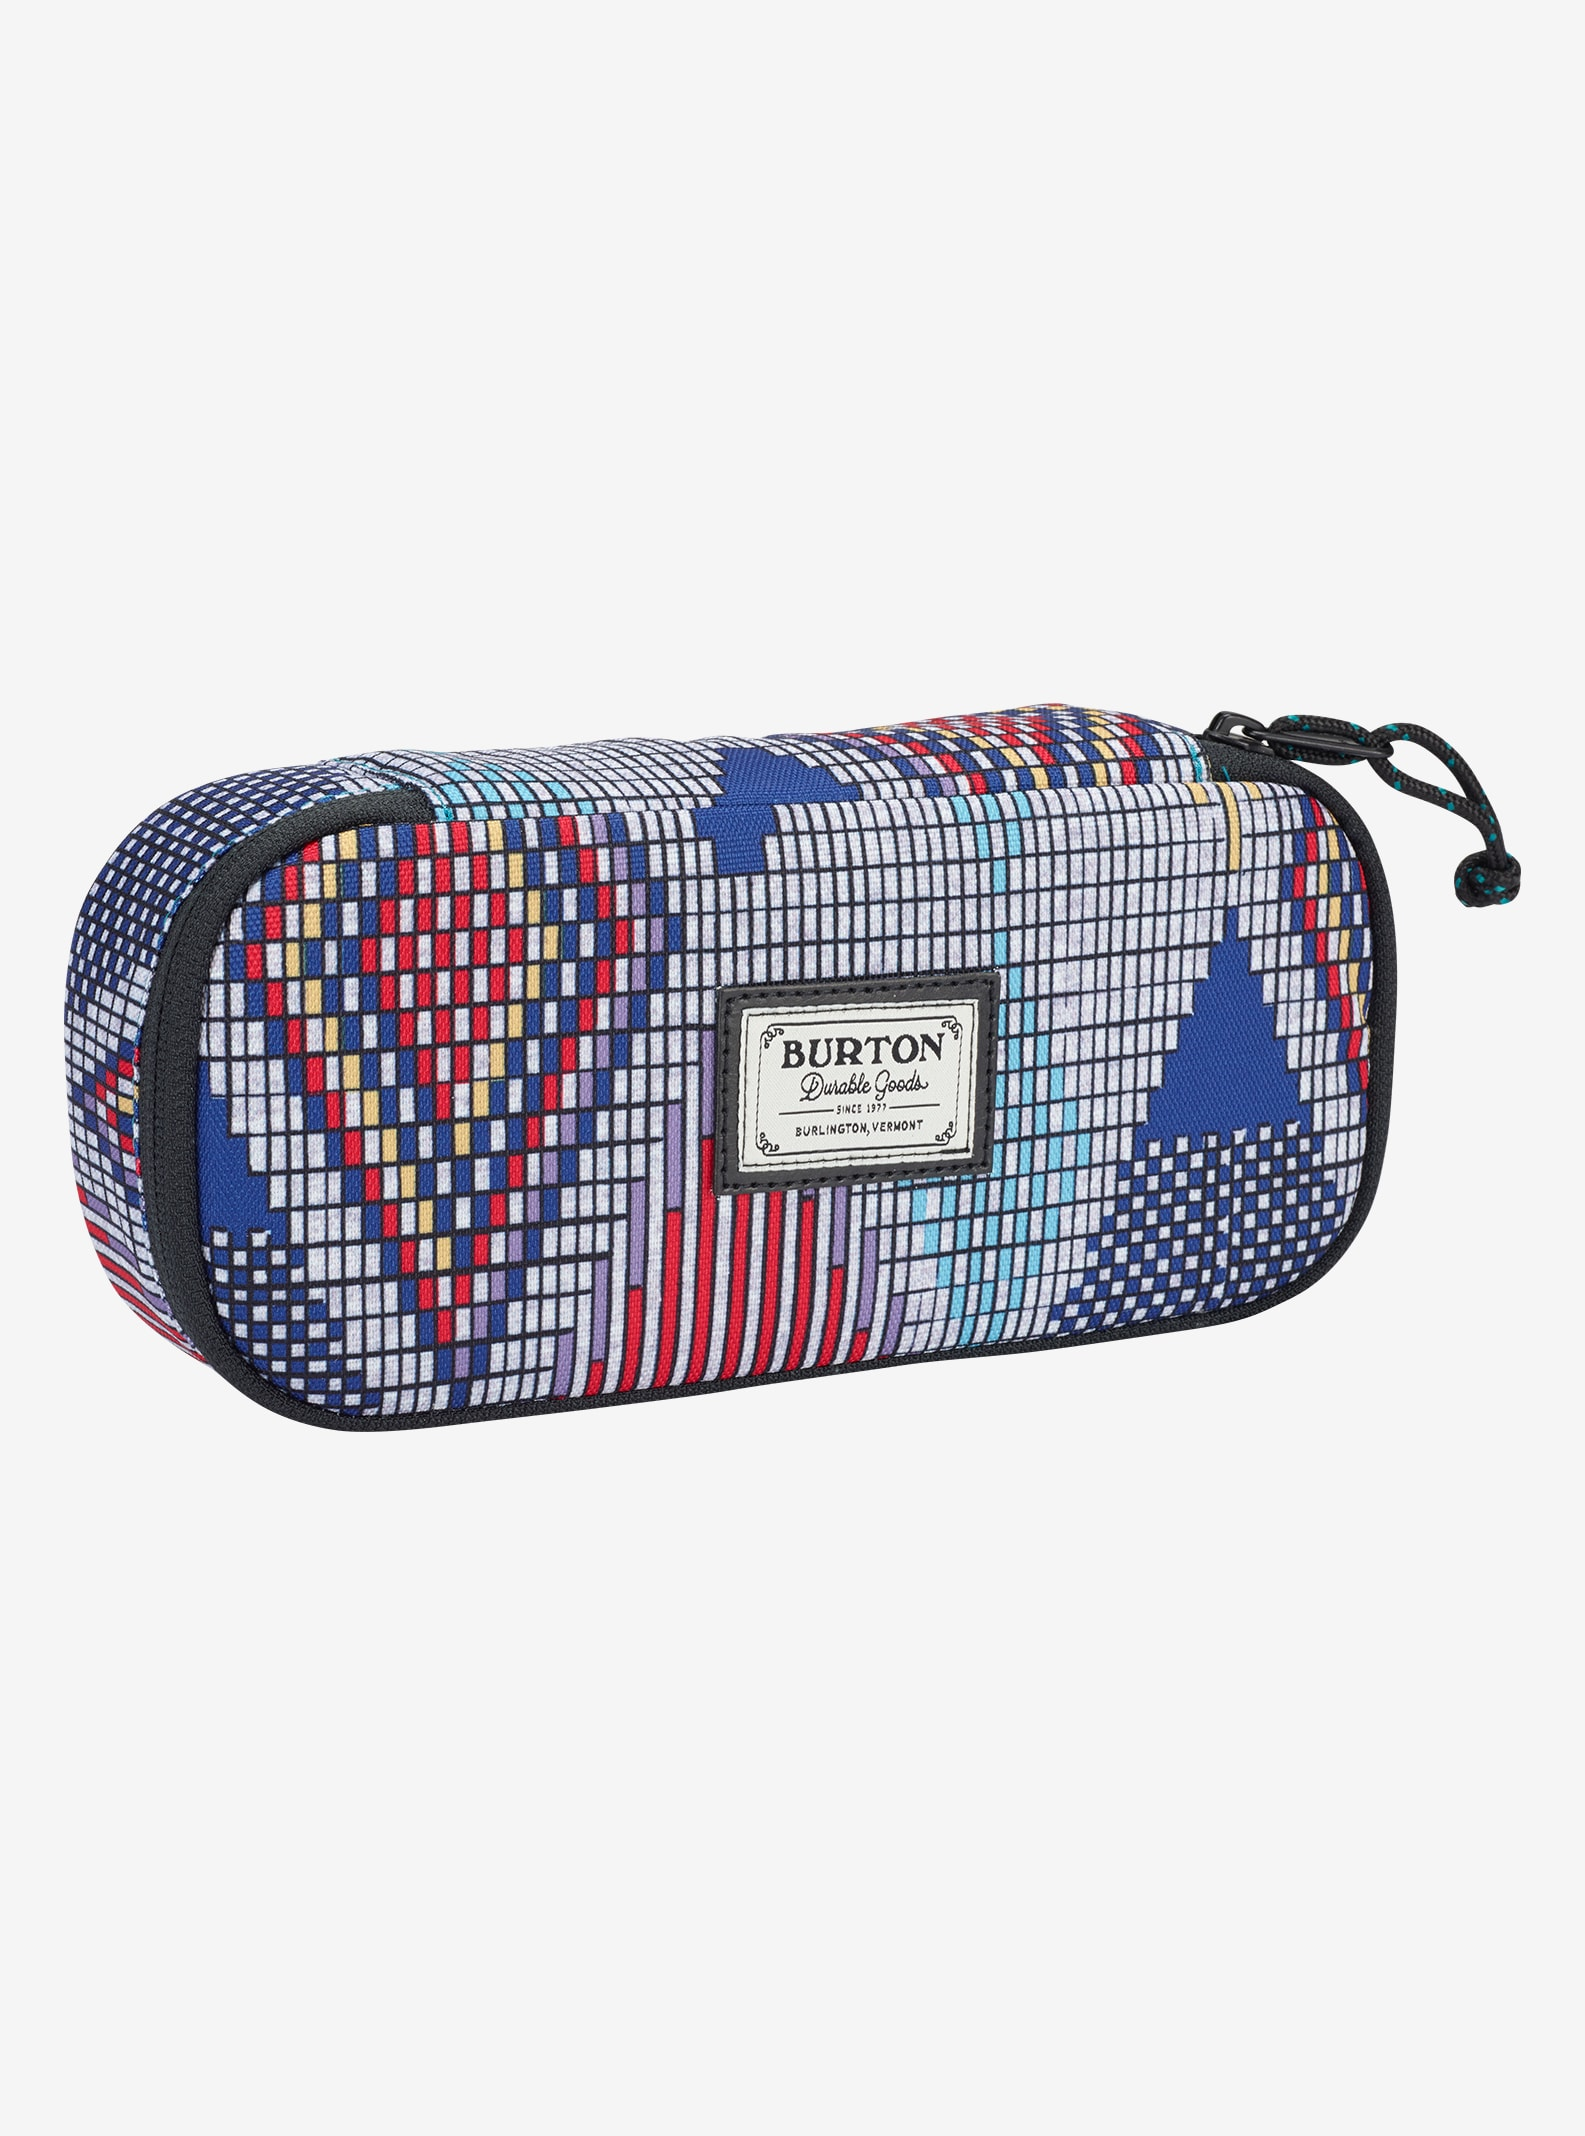 Burton Switchback Case shown in De Geo Print